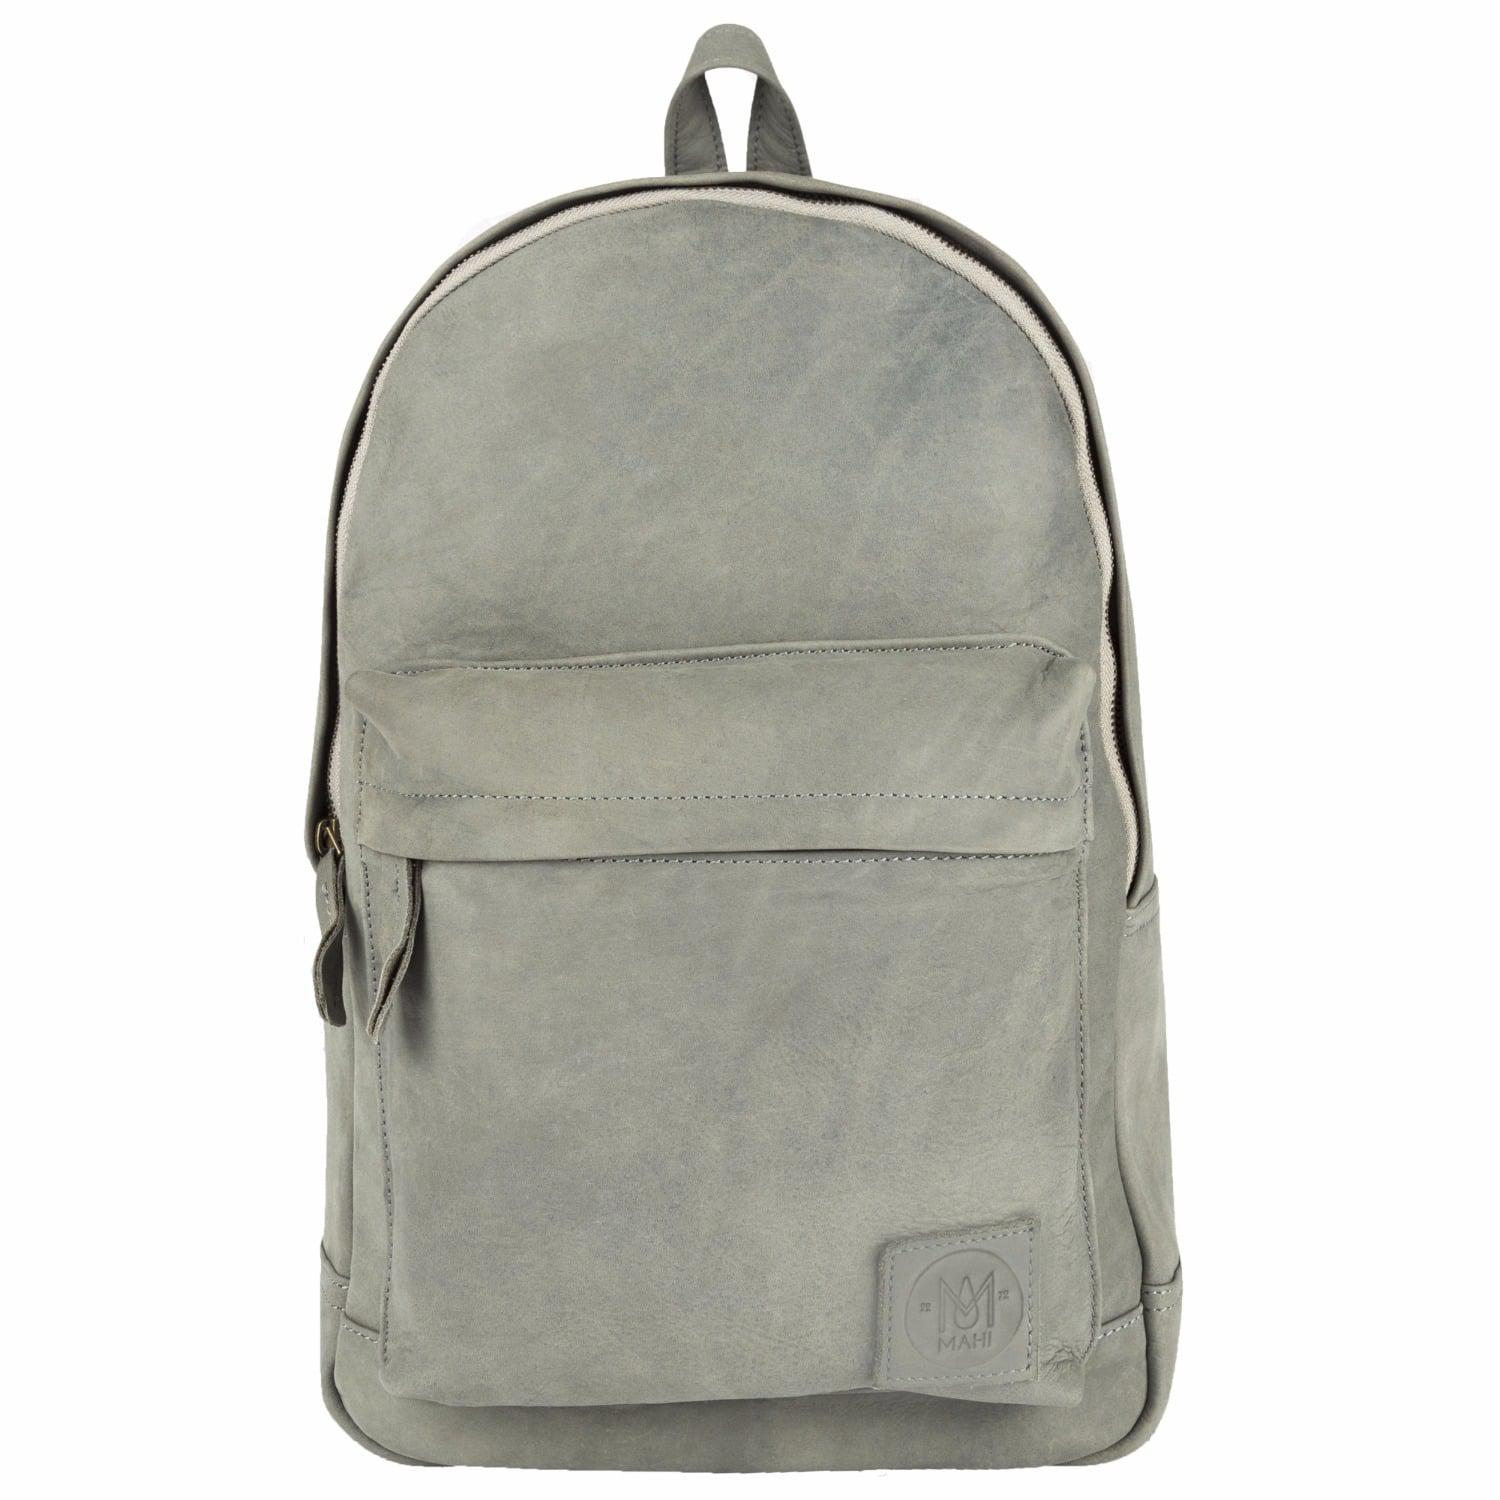 MAHI Leather Classic Backpack Rucksack in Vintage Very Cheap For Sale Sneakernews Cheap Price Really Cheap Price Clearance Best Sale xx2Bfwt